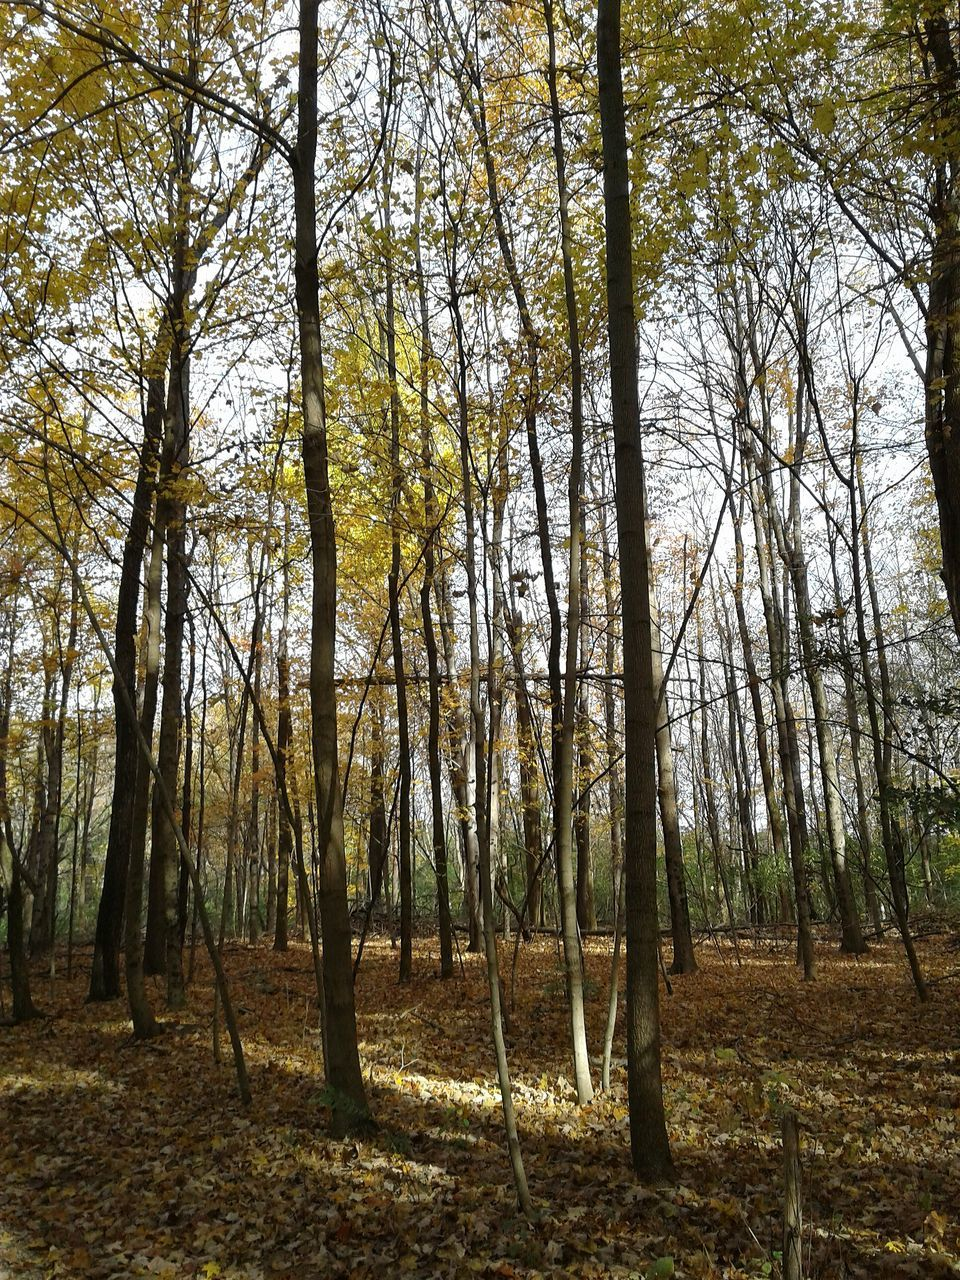 tree, forest, nature, tree trunk, tranquility, tranquil scene, beauty in nature, scenics, woodland, outdoors, no people, landscape, day, branch, autumn, growth, sky